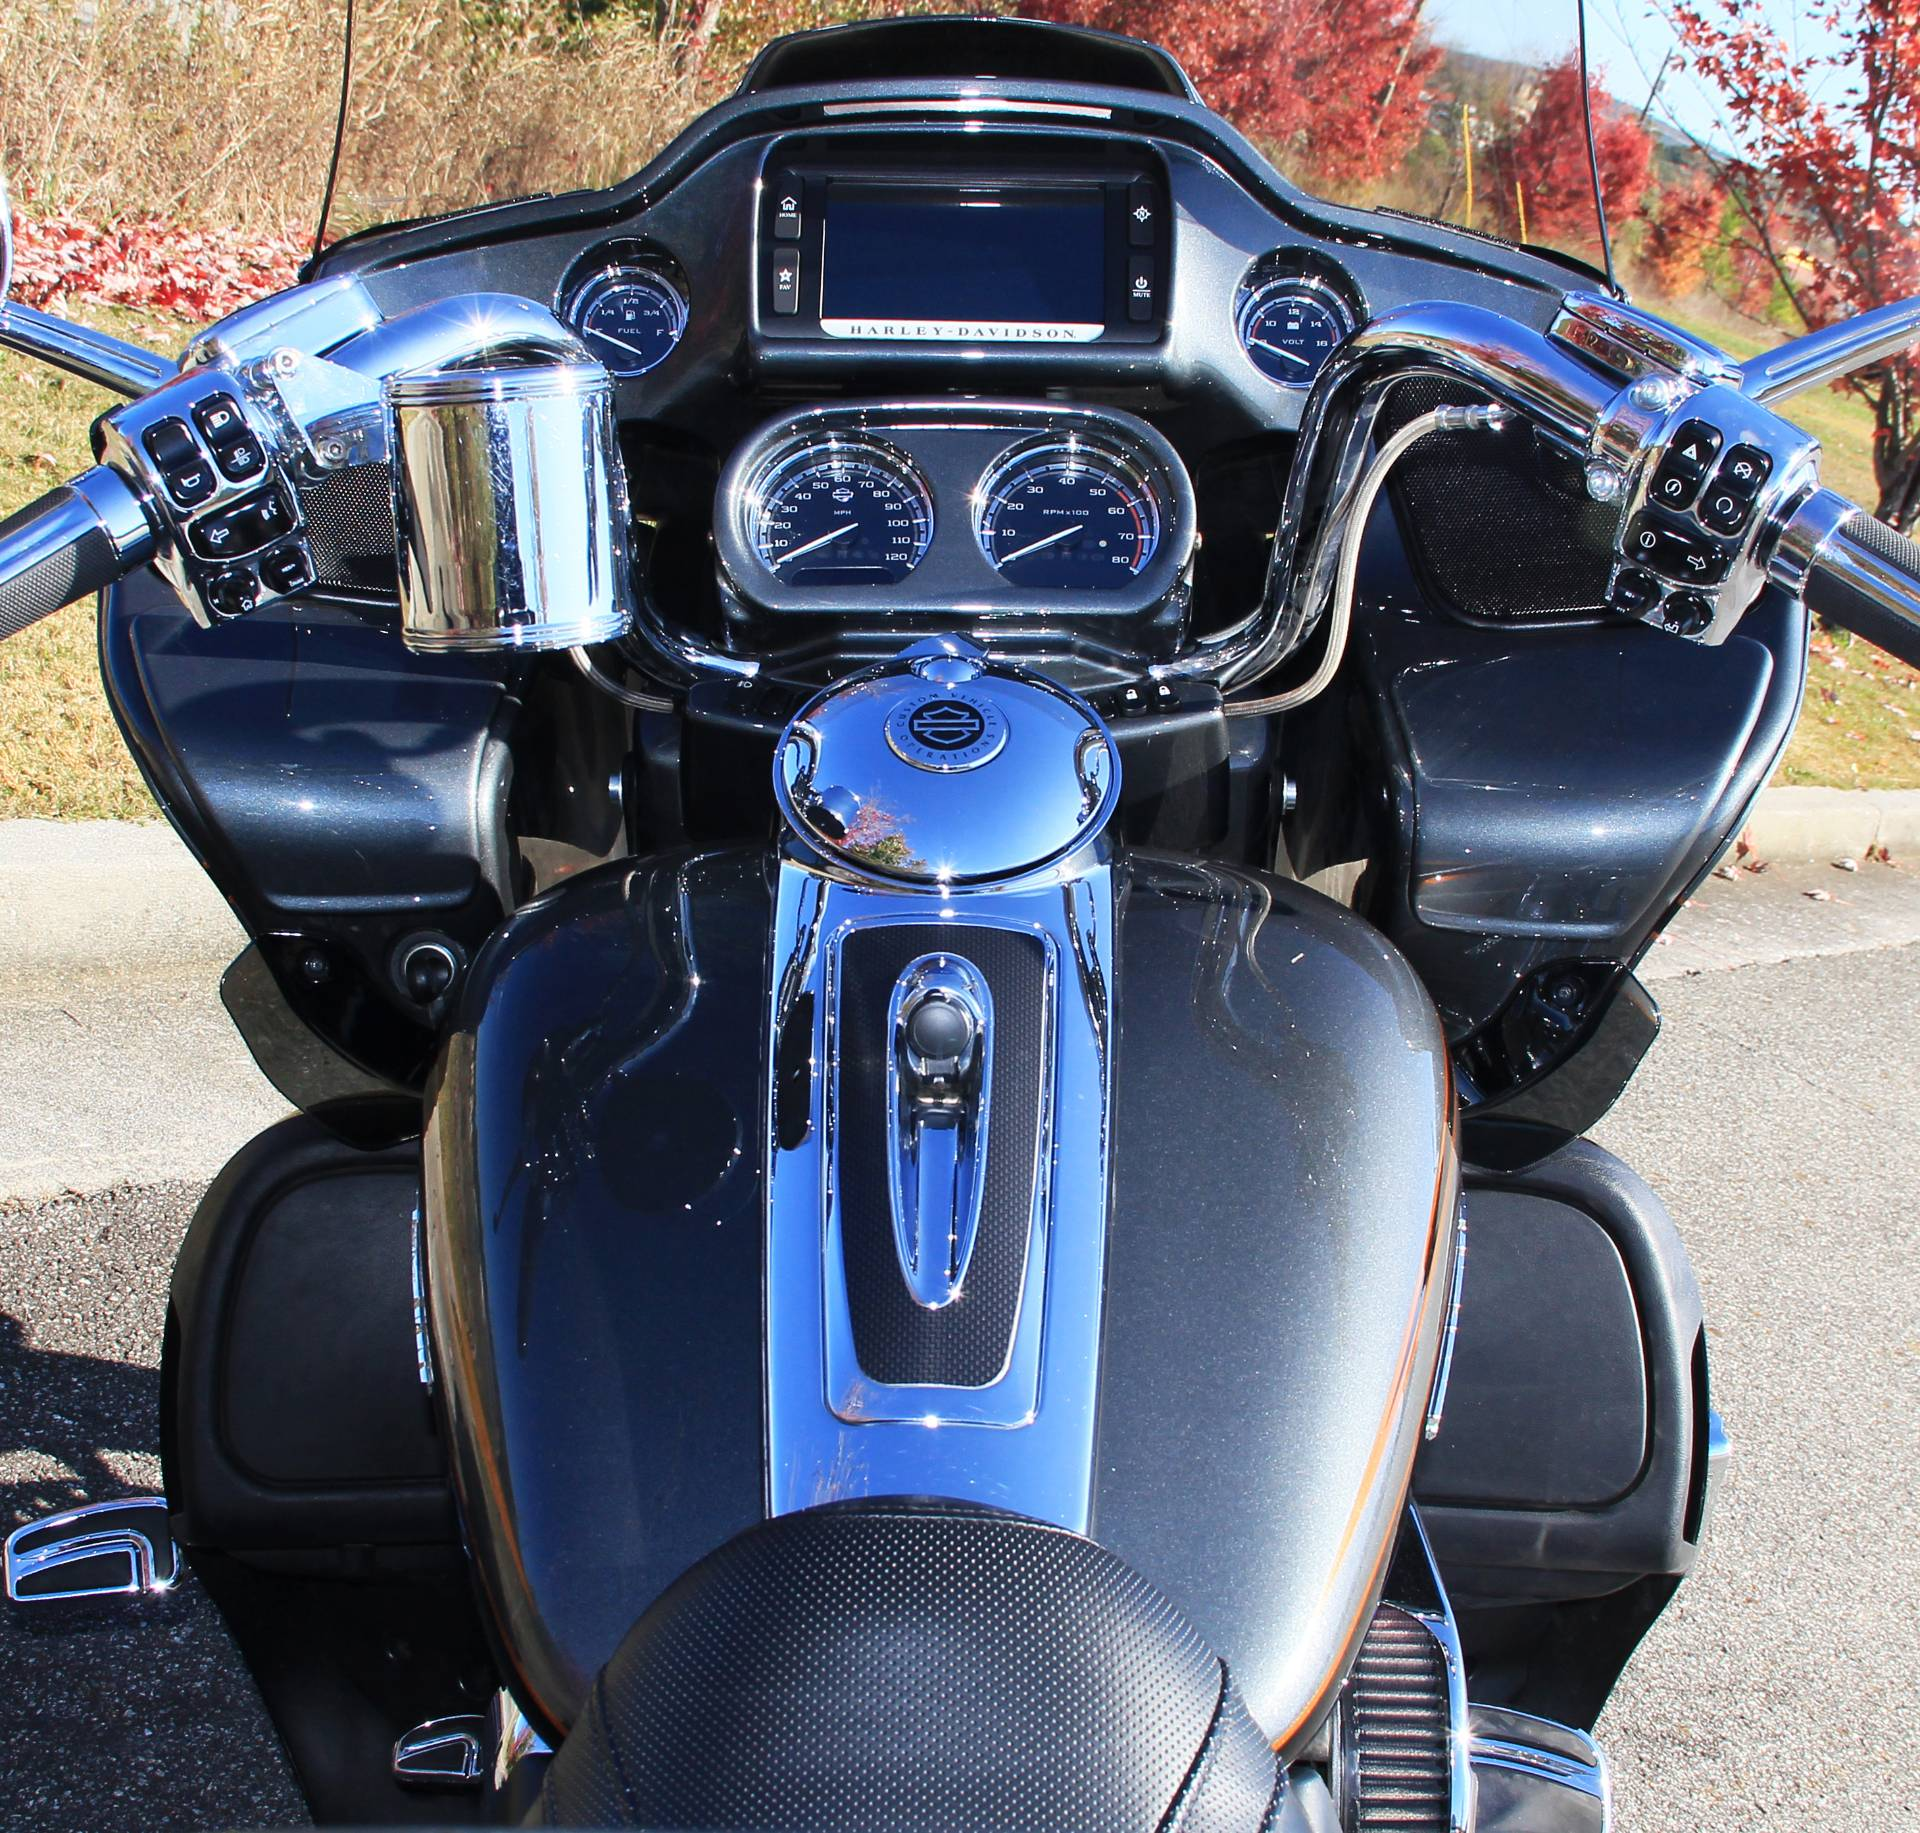 2016 Harley-Davidson Road Glide Ultra CVO in Cartersville, Georgia - Photo 7